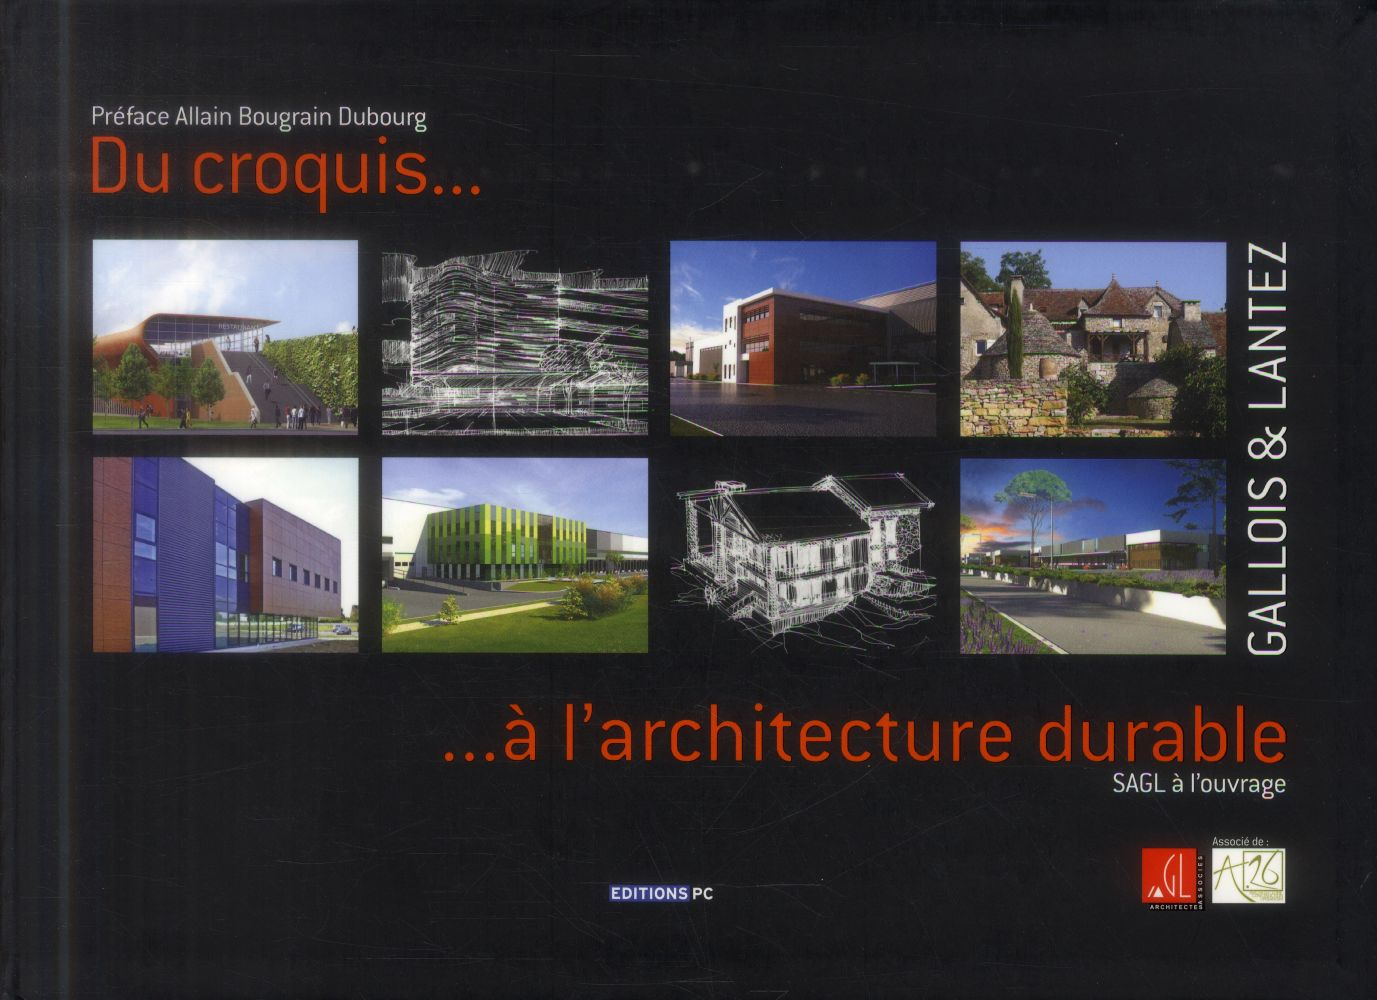 DU CROQUIS A L ARCHITECTURE DURABLE